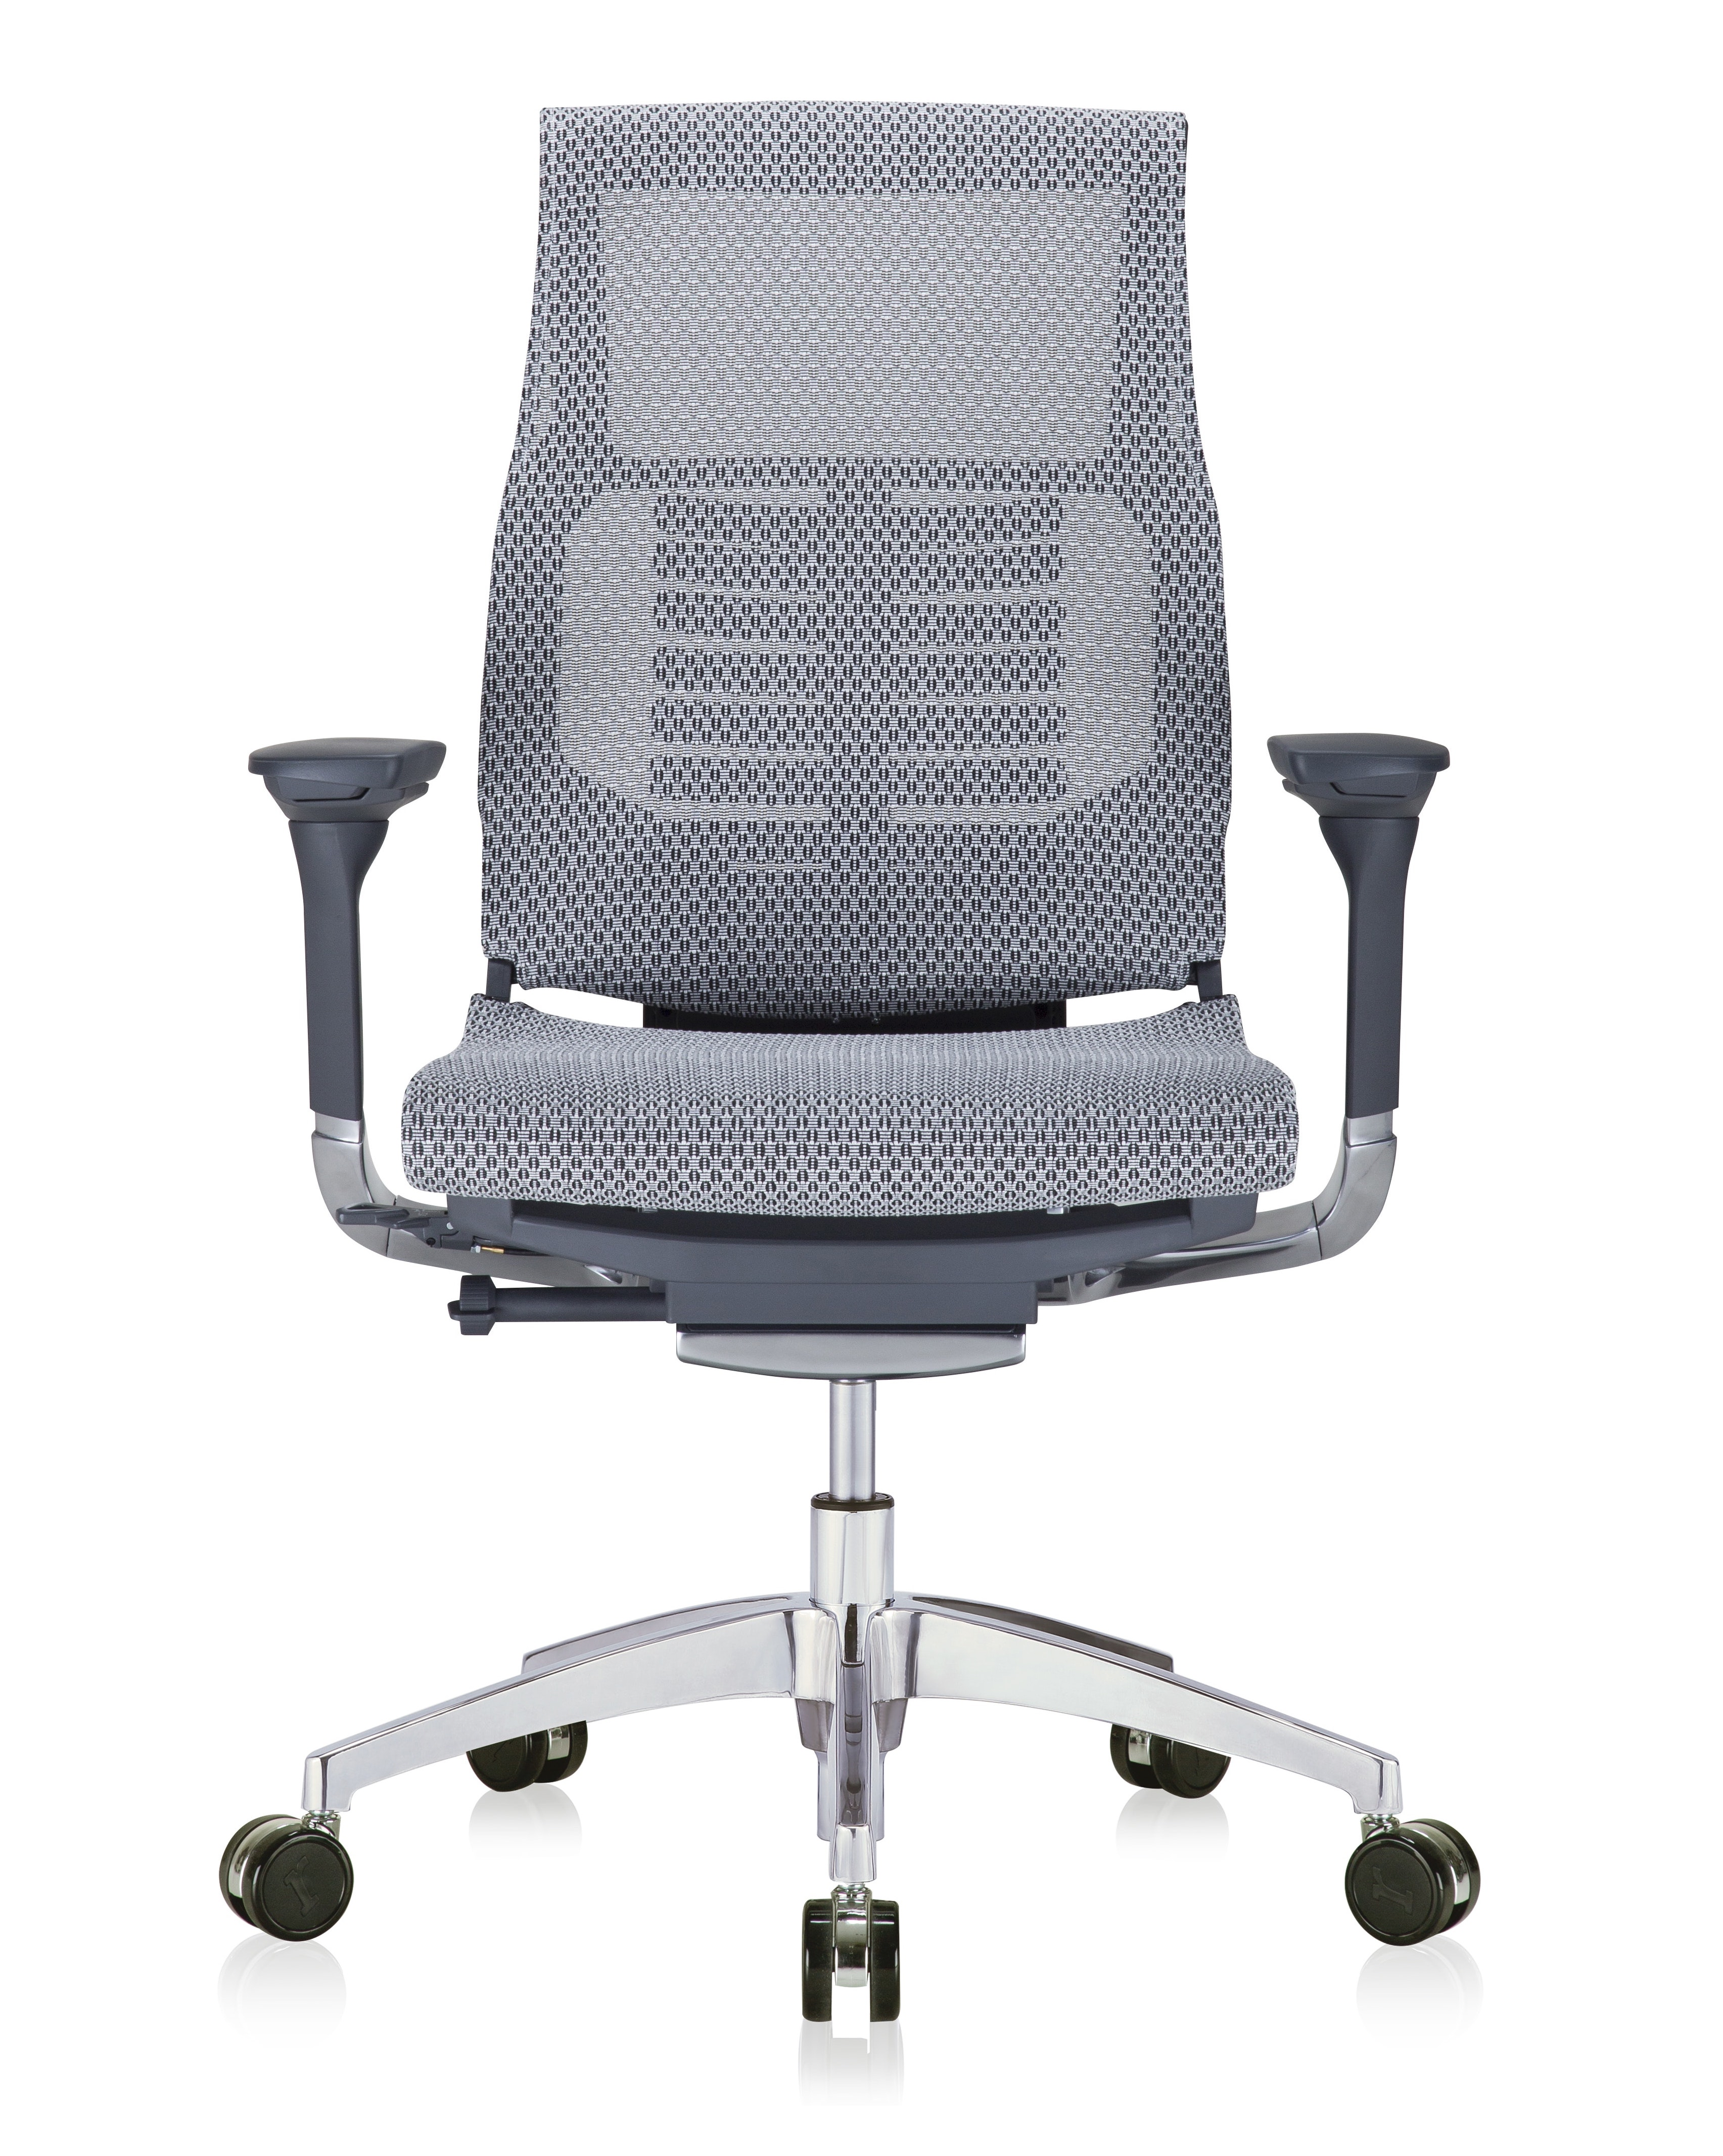 eurotech powerfit chair front profile